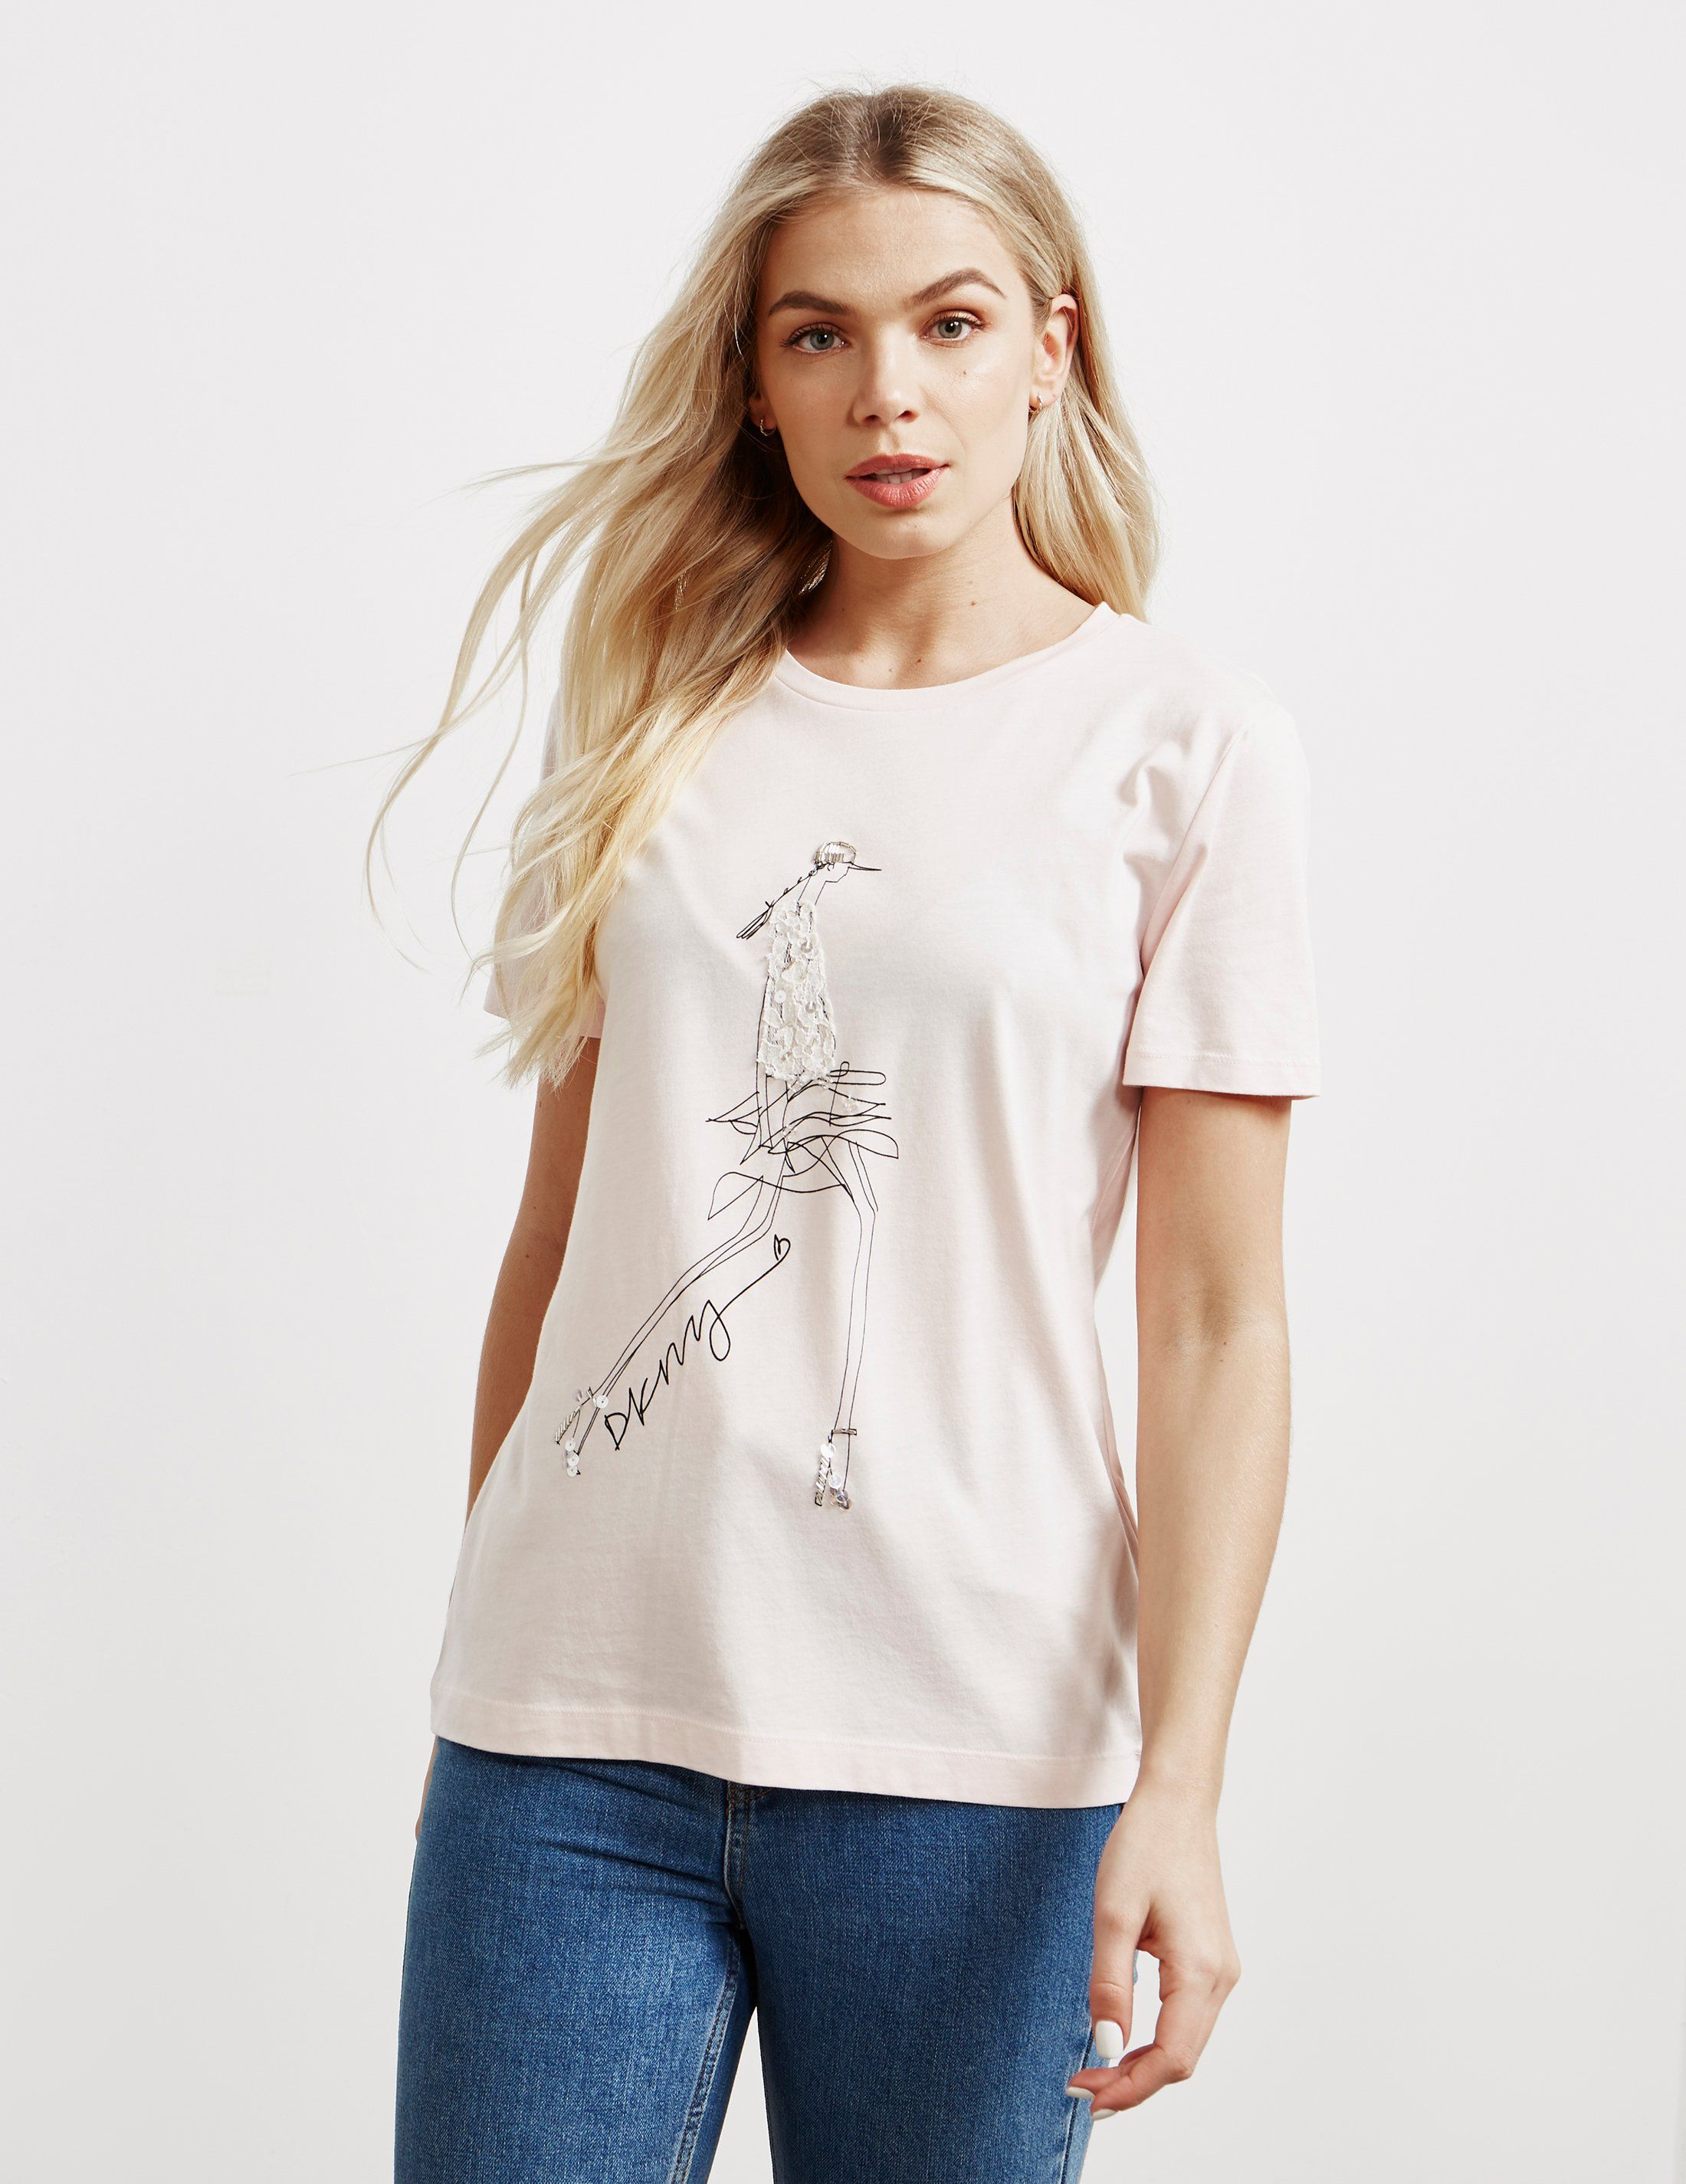 DKNY Lace Graphic Short Sleeve T-Shirt